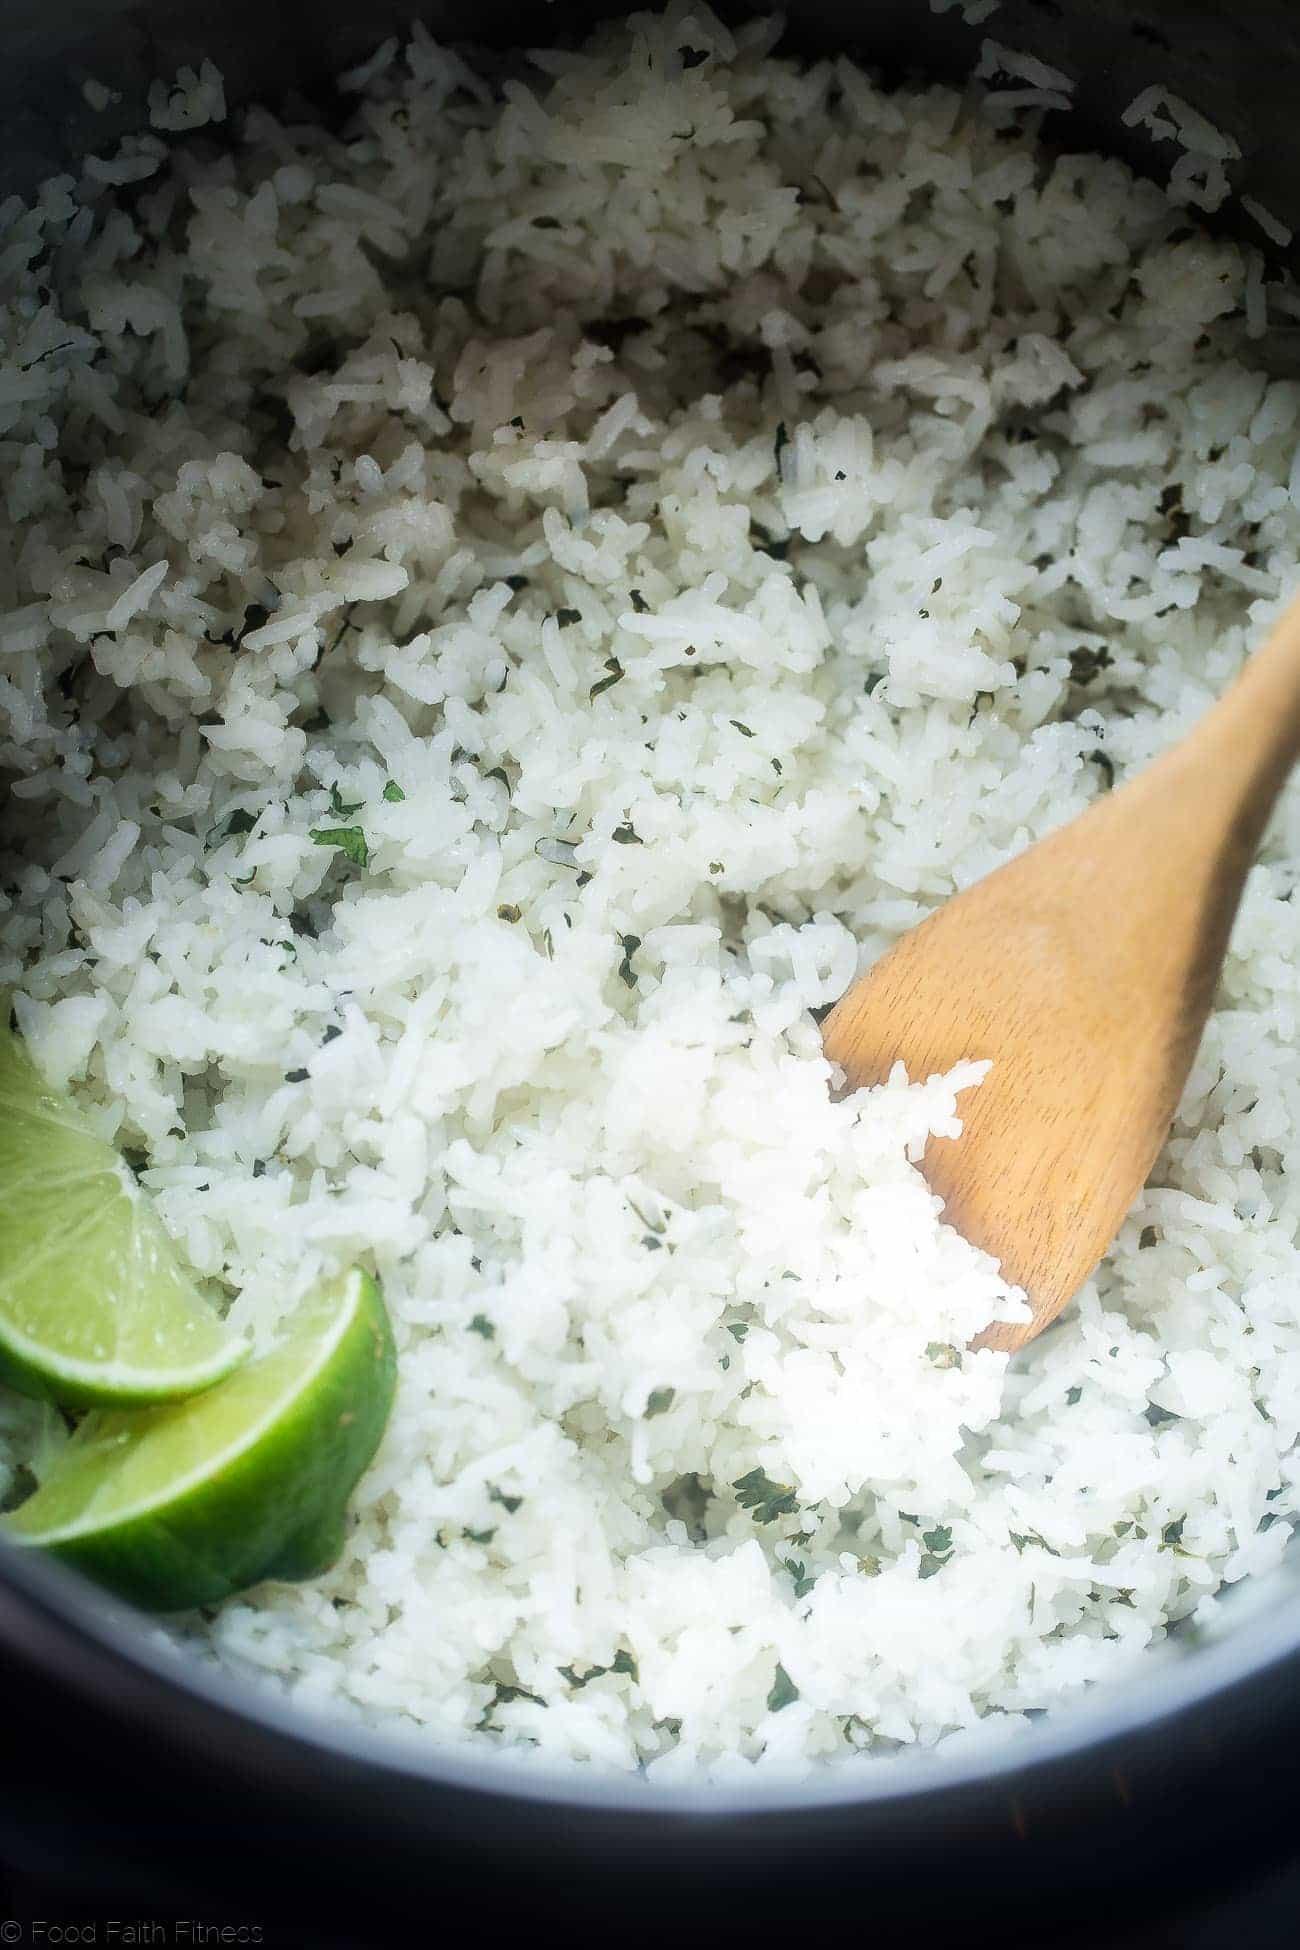 Instant Pot Cilantro Lime Rice - This super easy rice tastes like Chipotle's, is only 3 ingredients and is ready in 12 minutes - the perfect healthy side dish!   Foodfaithfitness.com   @FoodFaithFit